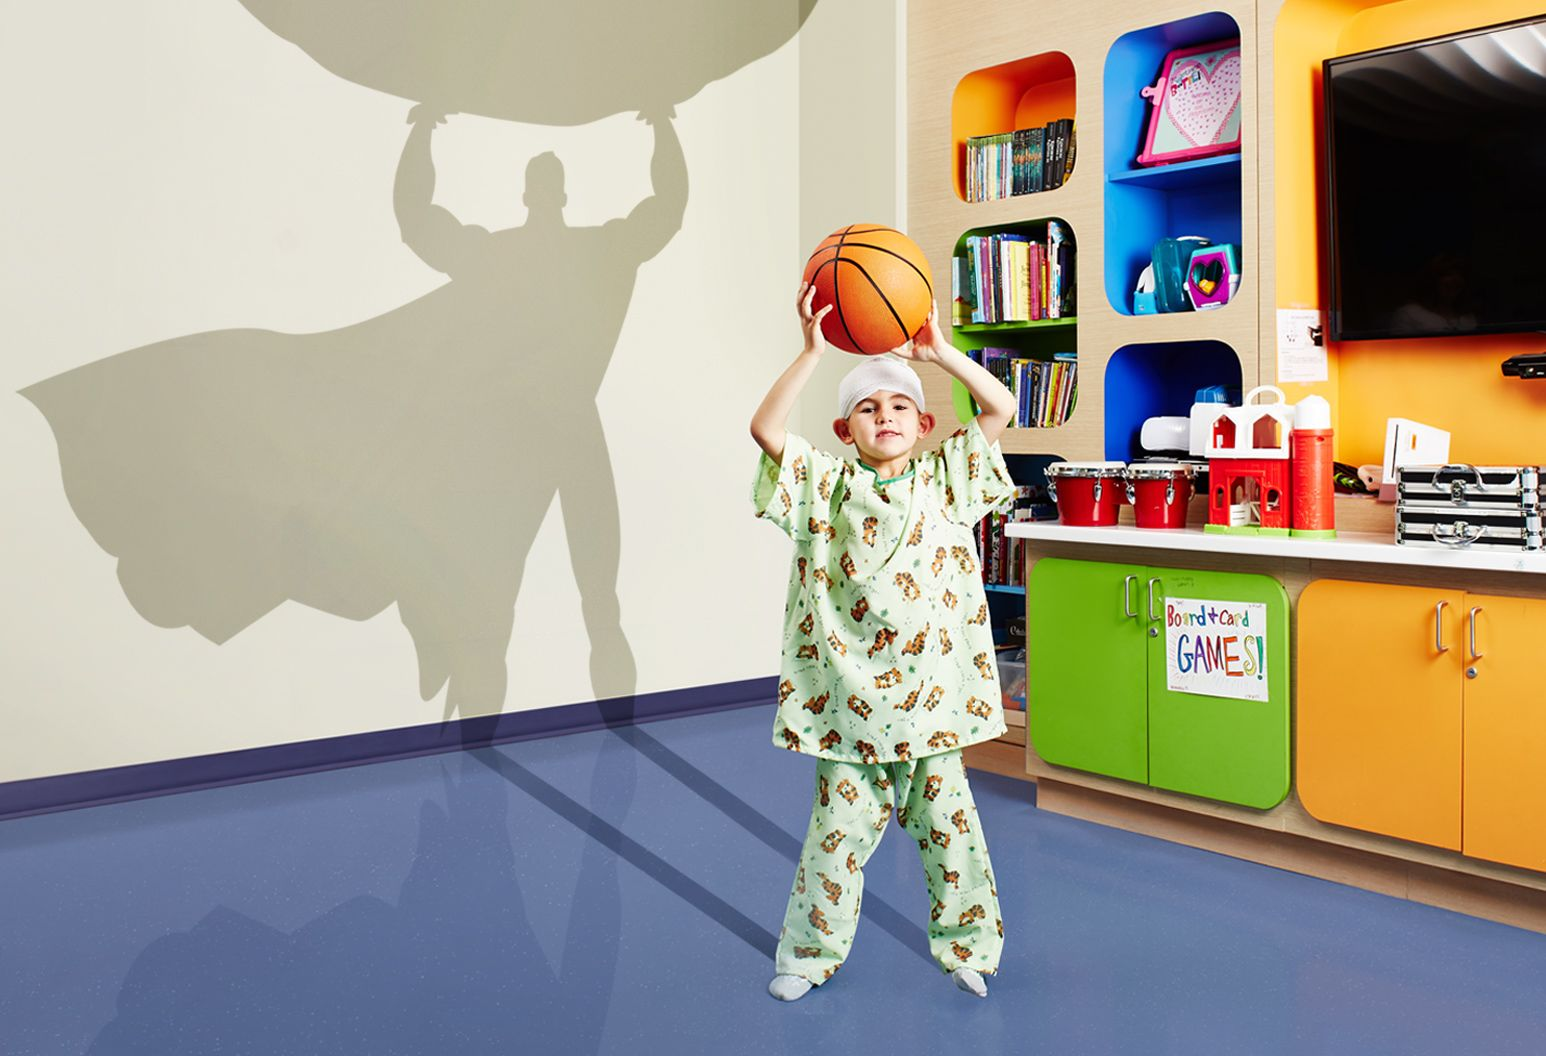 A young male patient wearing green animal printed hospital clothes stands in a colorful room proudly holding a basketball over his head. There's a shadow of a superhero on the wall behind him.